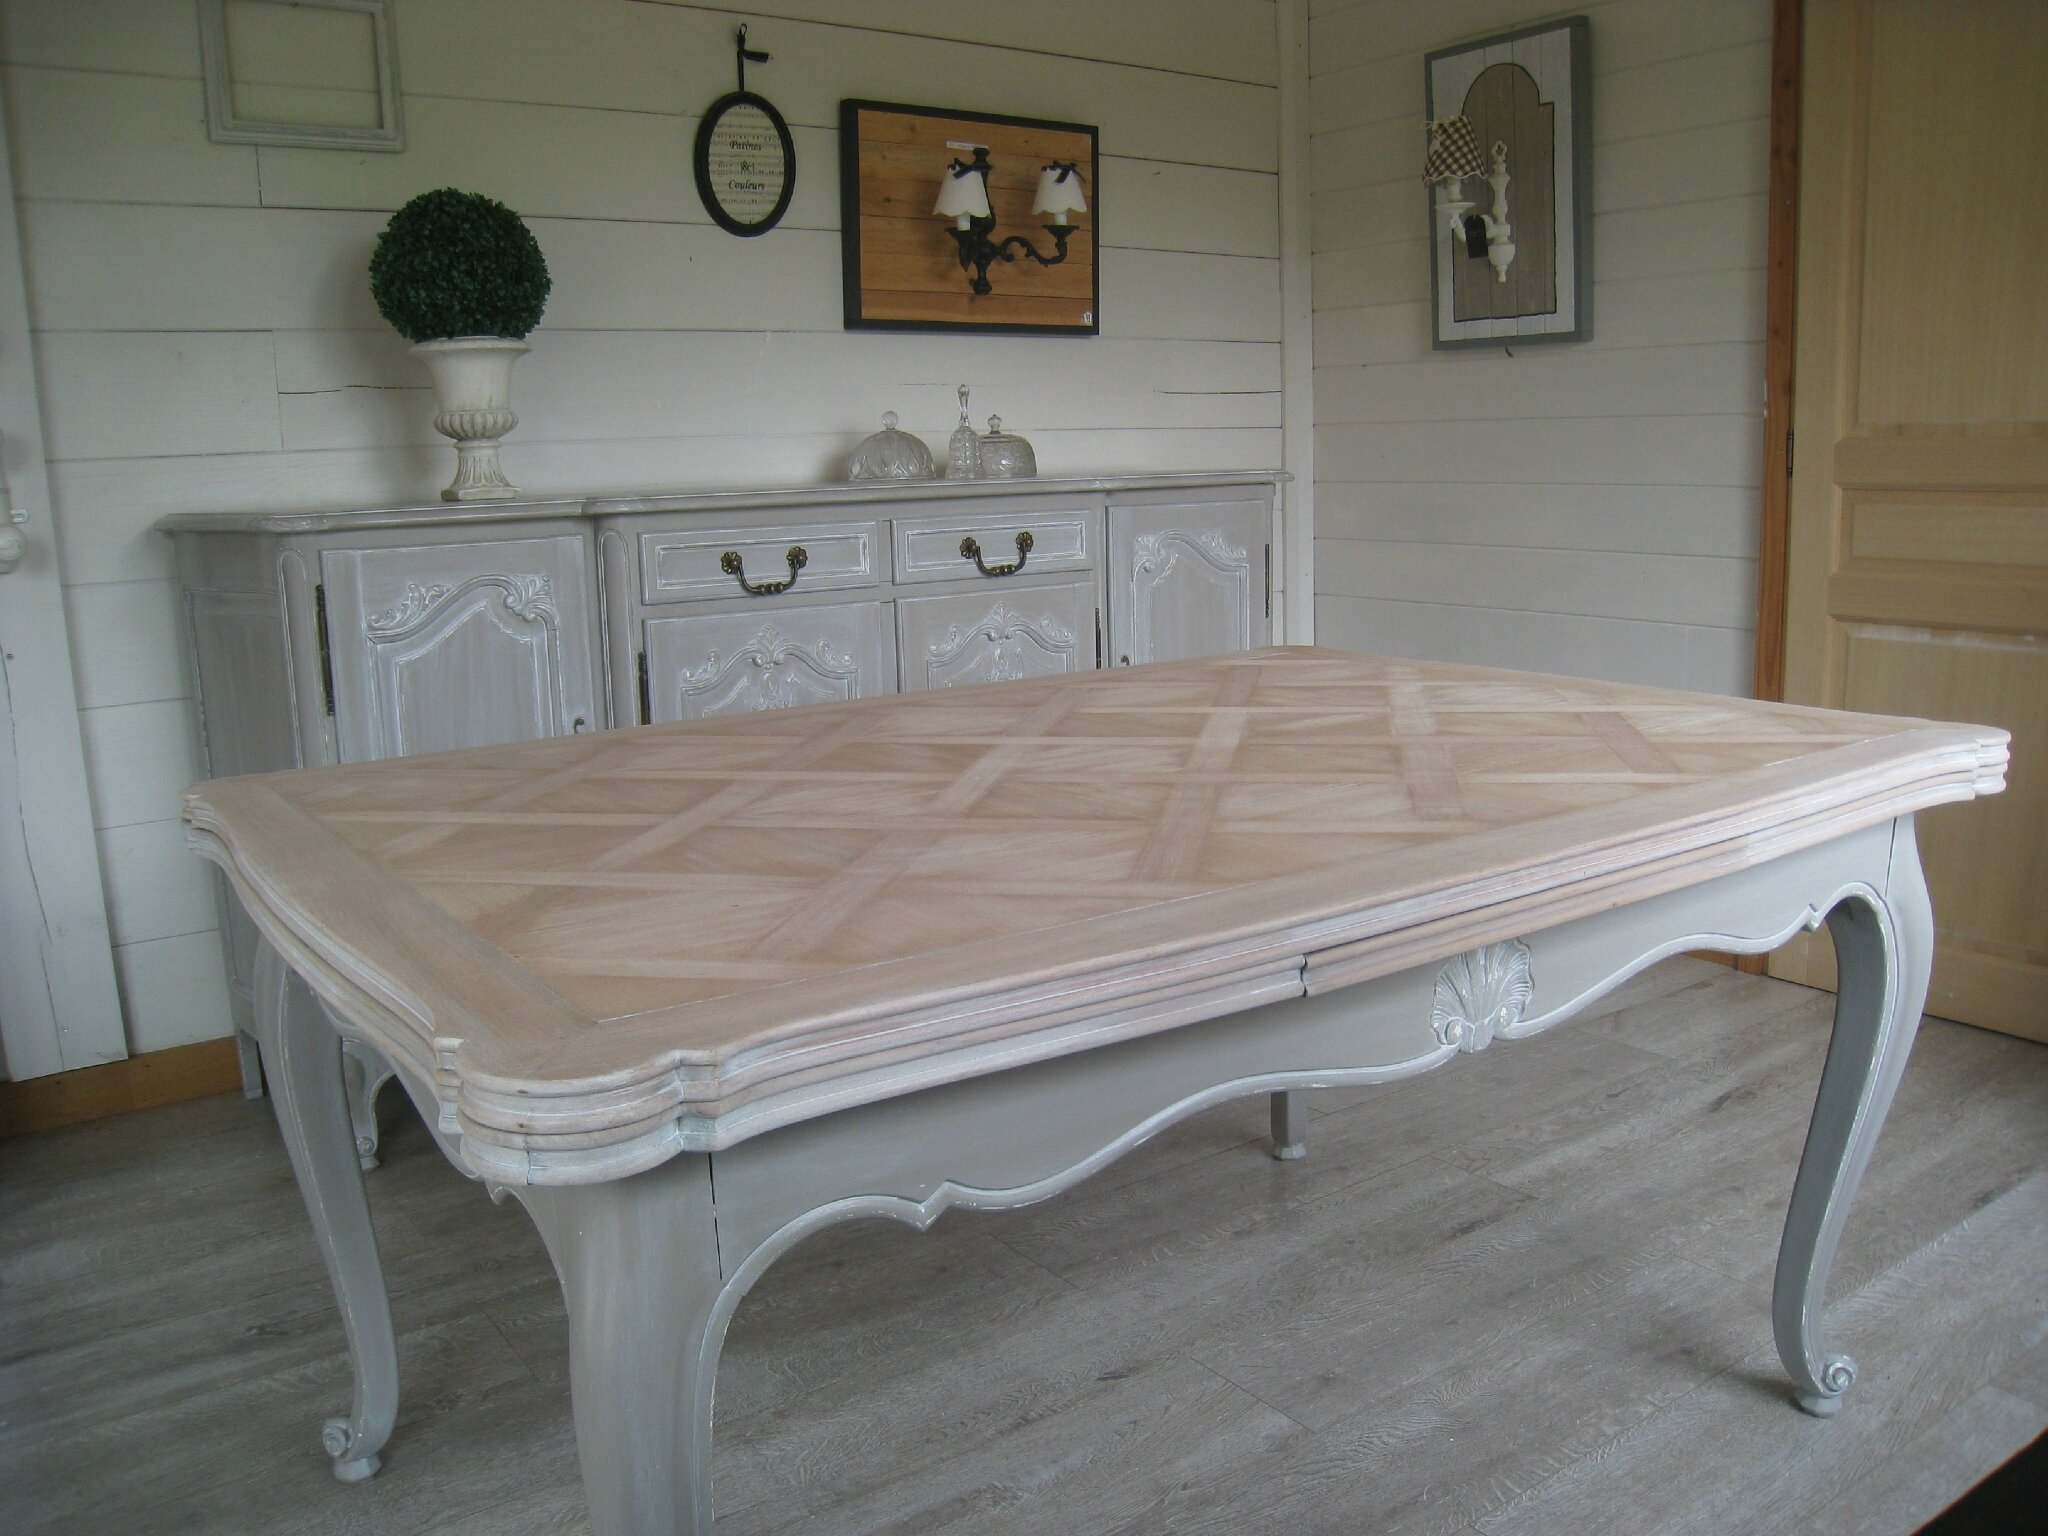 Bahut r gence relook et sa table assortie 2 patines for Moderniser un meuble en bois